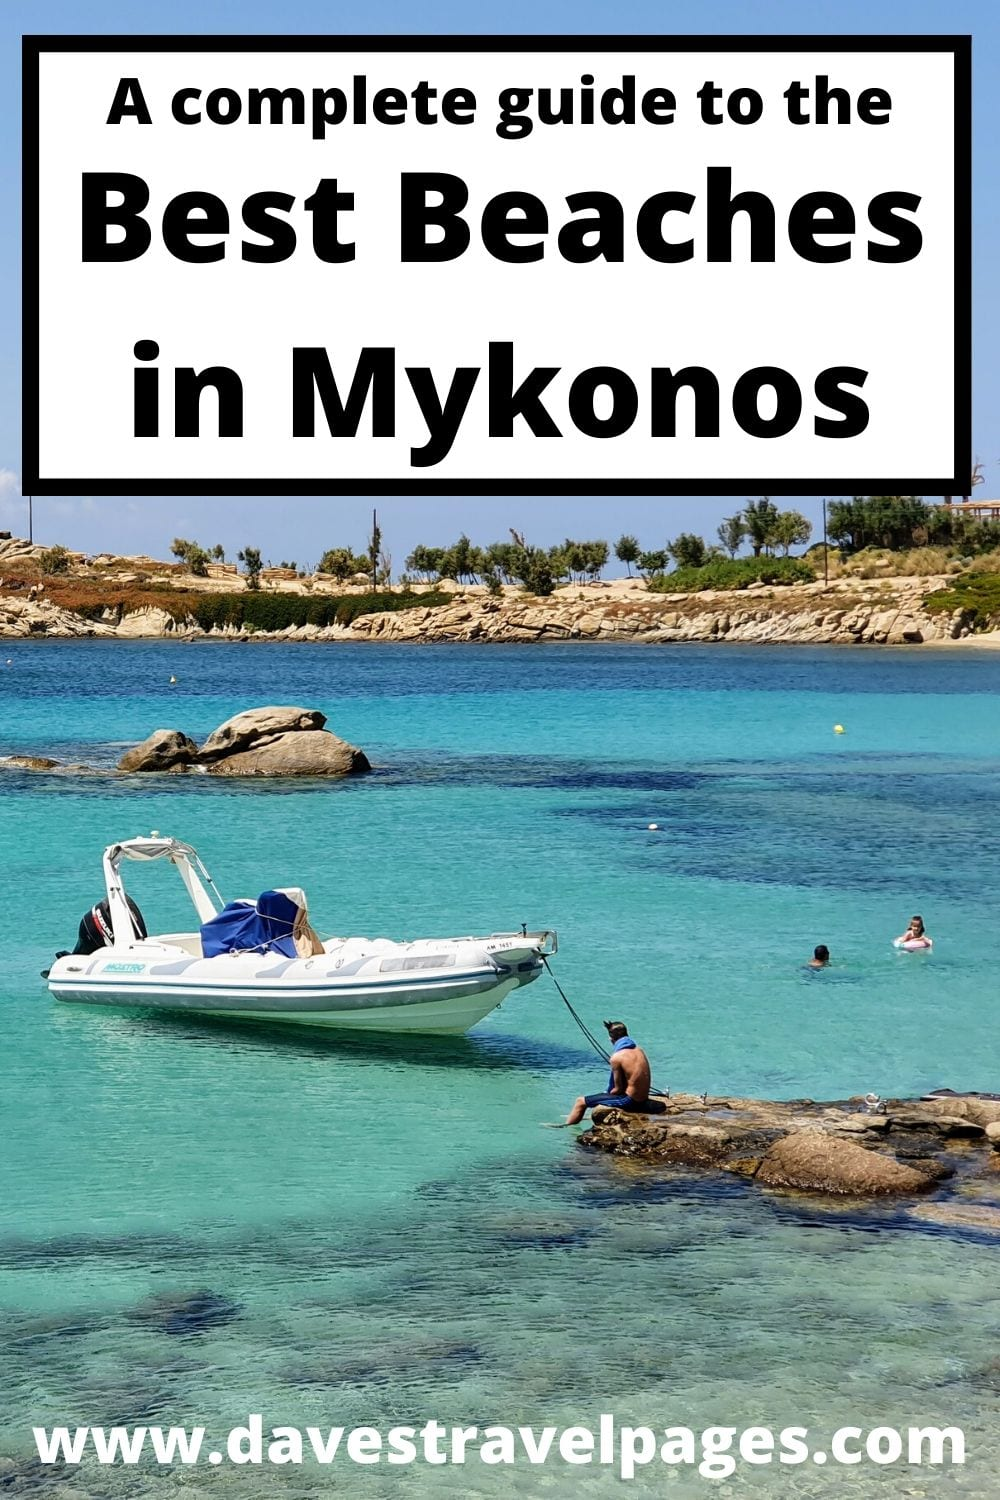 A complete guide to the best beaches in Mykonos Greece